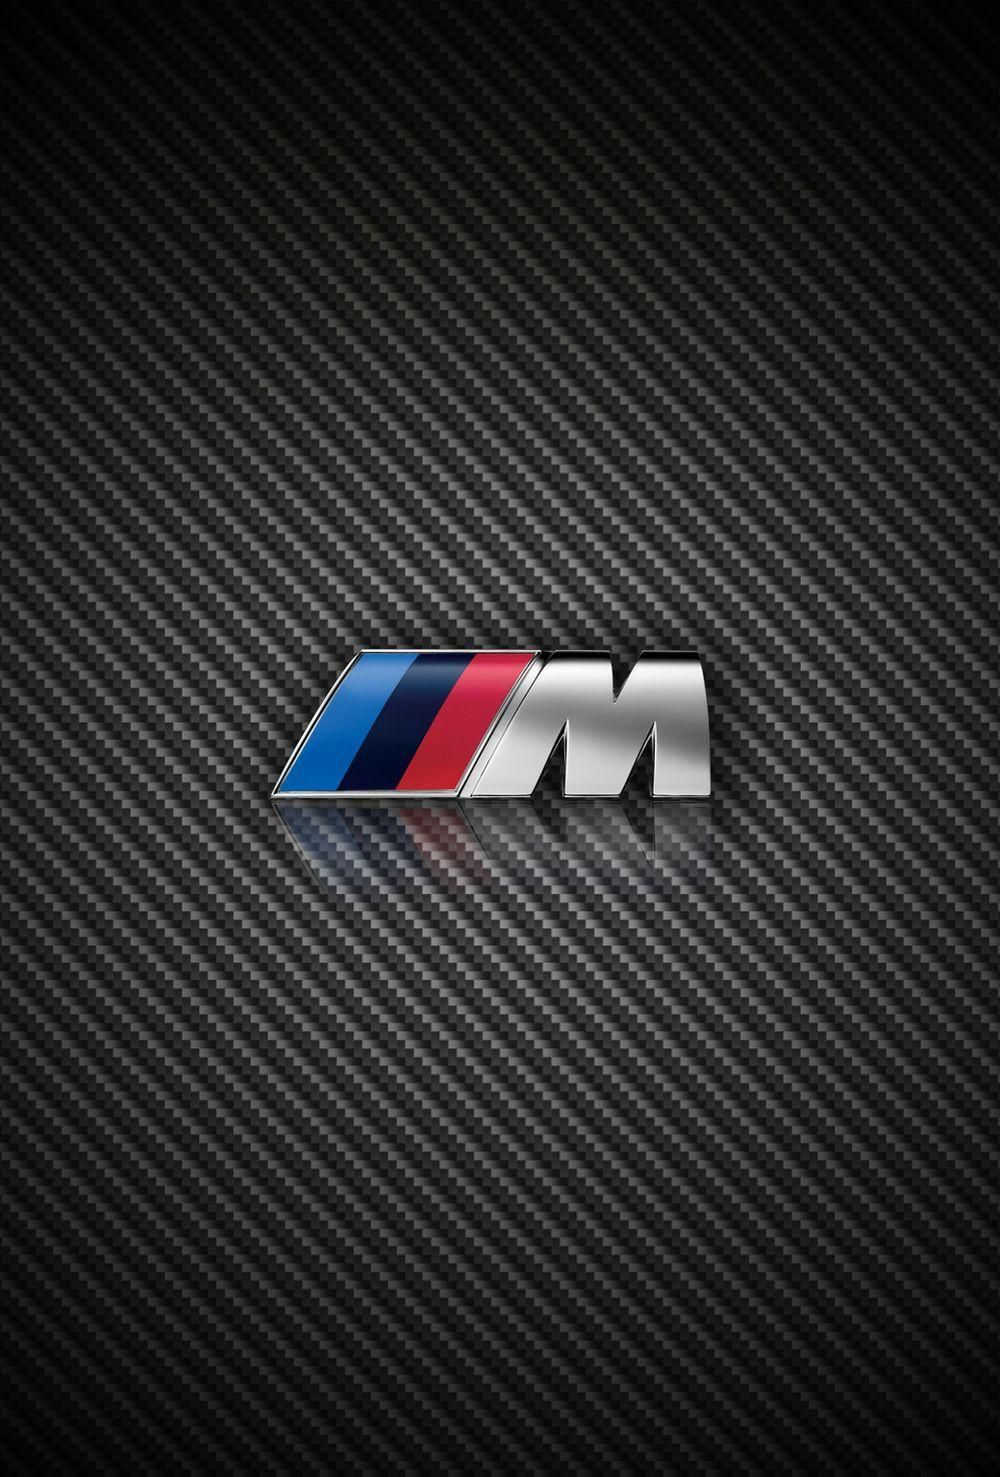 Bmw M Logo Wallpapers Wallpaper Cave With Images Bmw